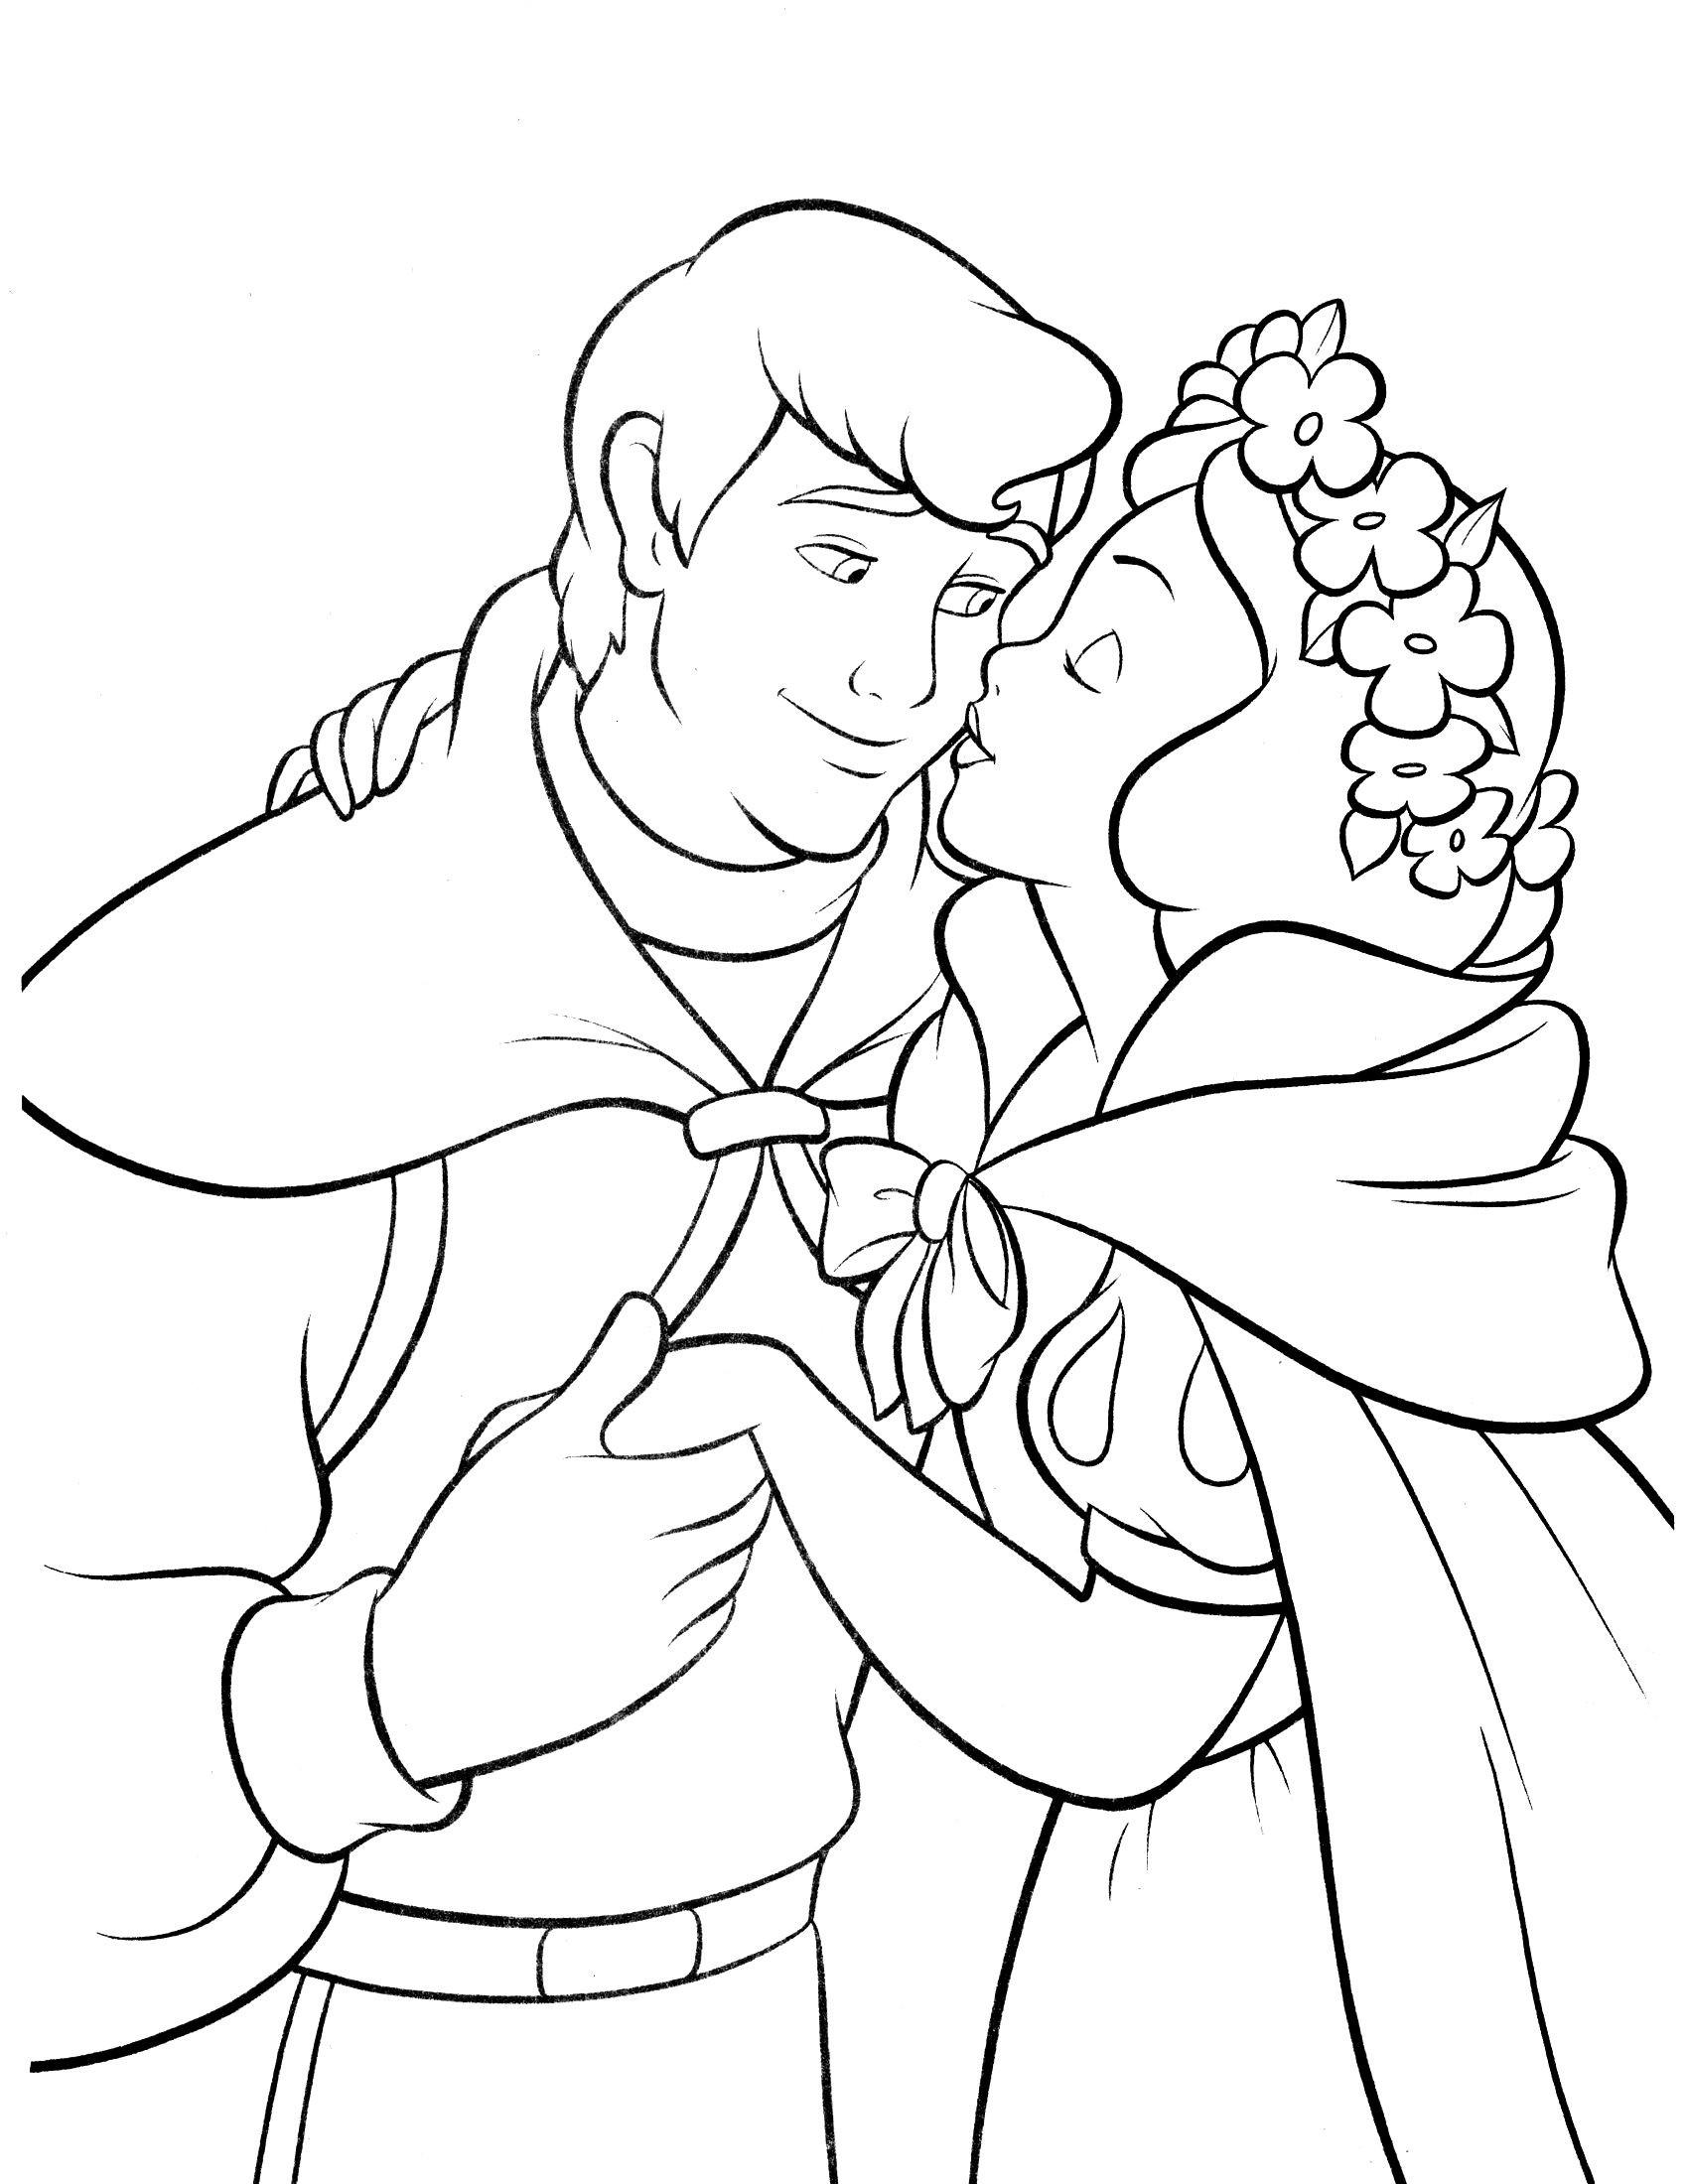 free snow white coloring pages snow white coloring pages best coloring pages for kids pages snow coloring white free